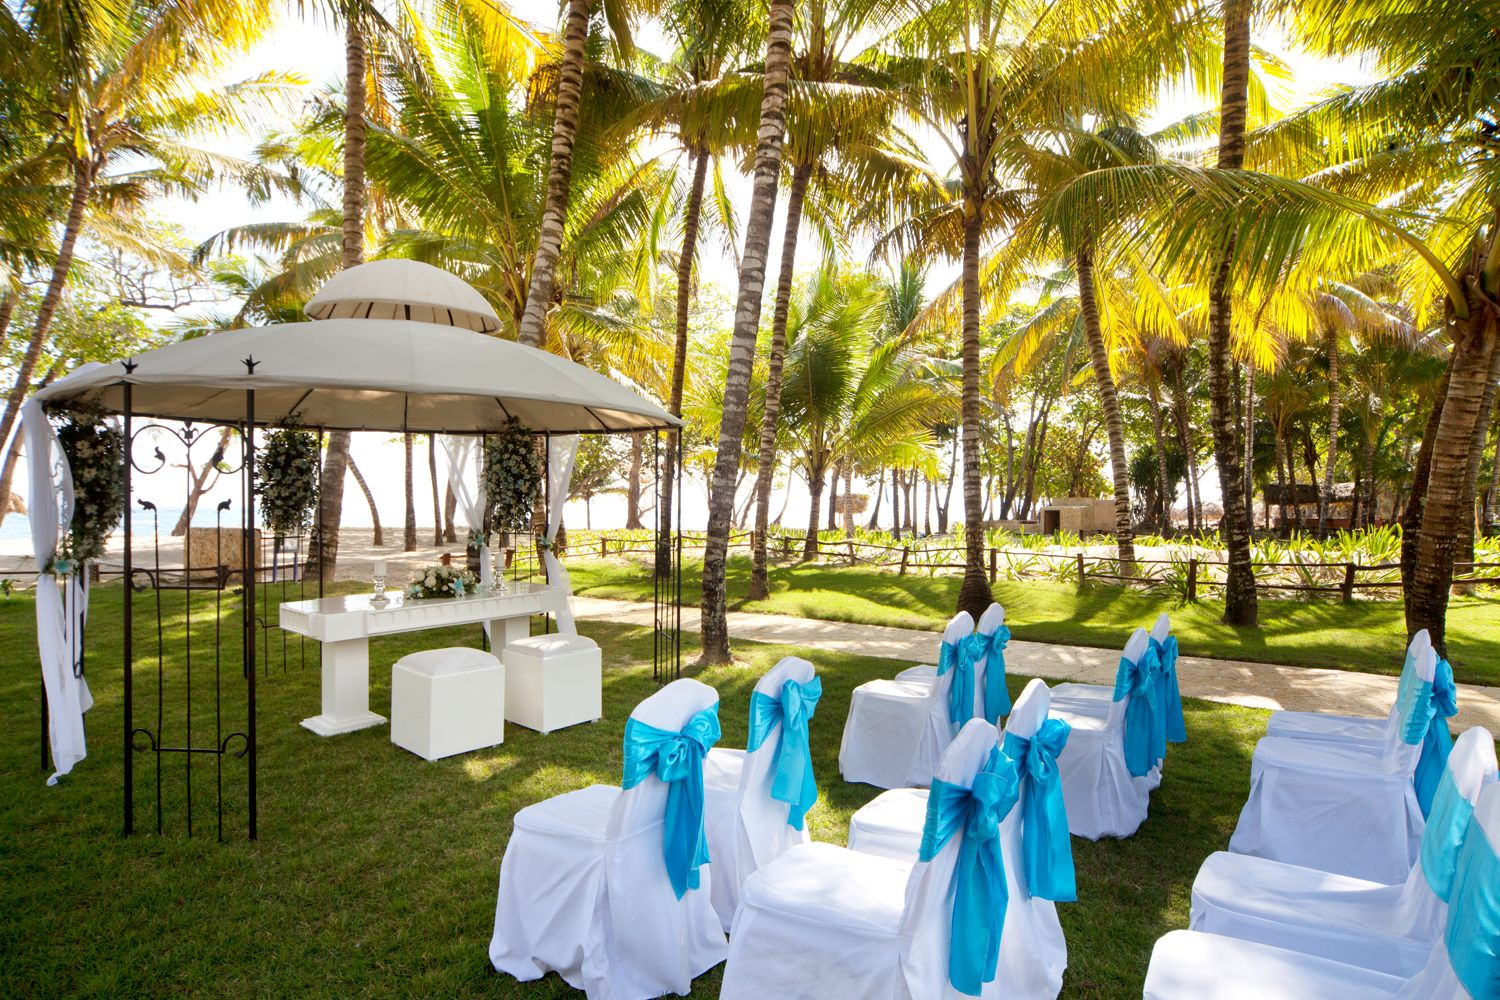 Cheap Destination Wedding Locations Of 2020 Destination Weddings Cheap Destination Wedding Affordable Destination Wedding Locations Destination Wedding Locations